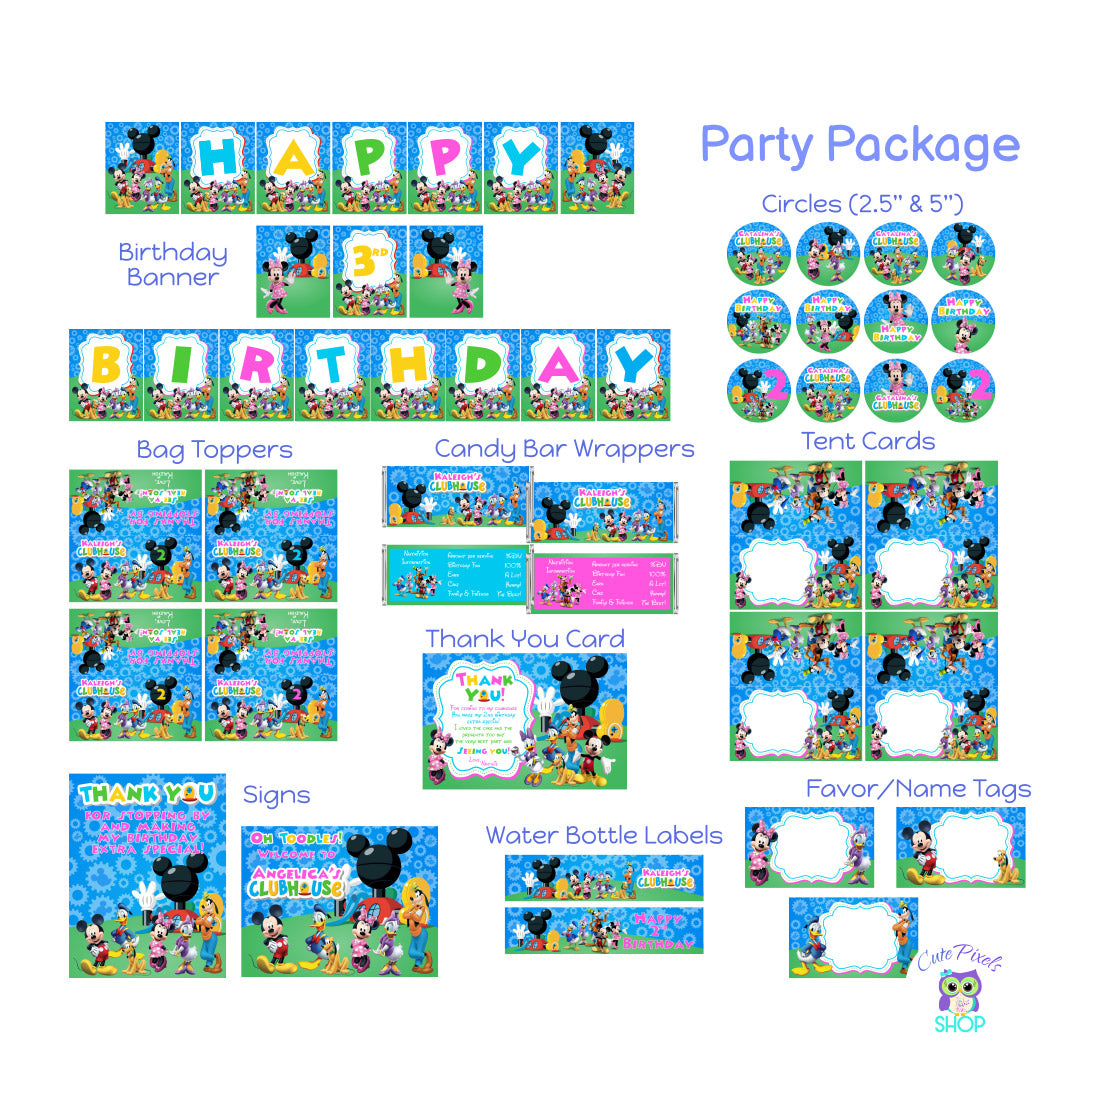 Minnie Mouse Party decorations for a Mickey Mouse clubhouse birthday party. Includes Birthday Banner, Cupcake toppers, Bag toppers, Cand Bar Wrappers, Place cards, signs, water bottle lables and favor tags